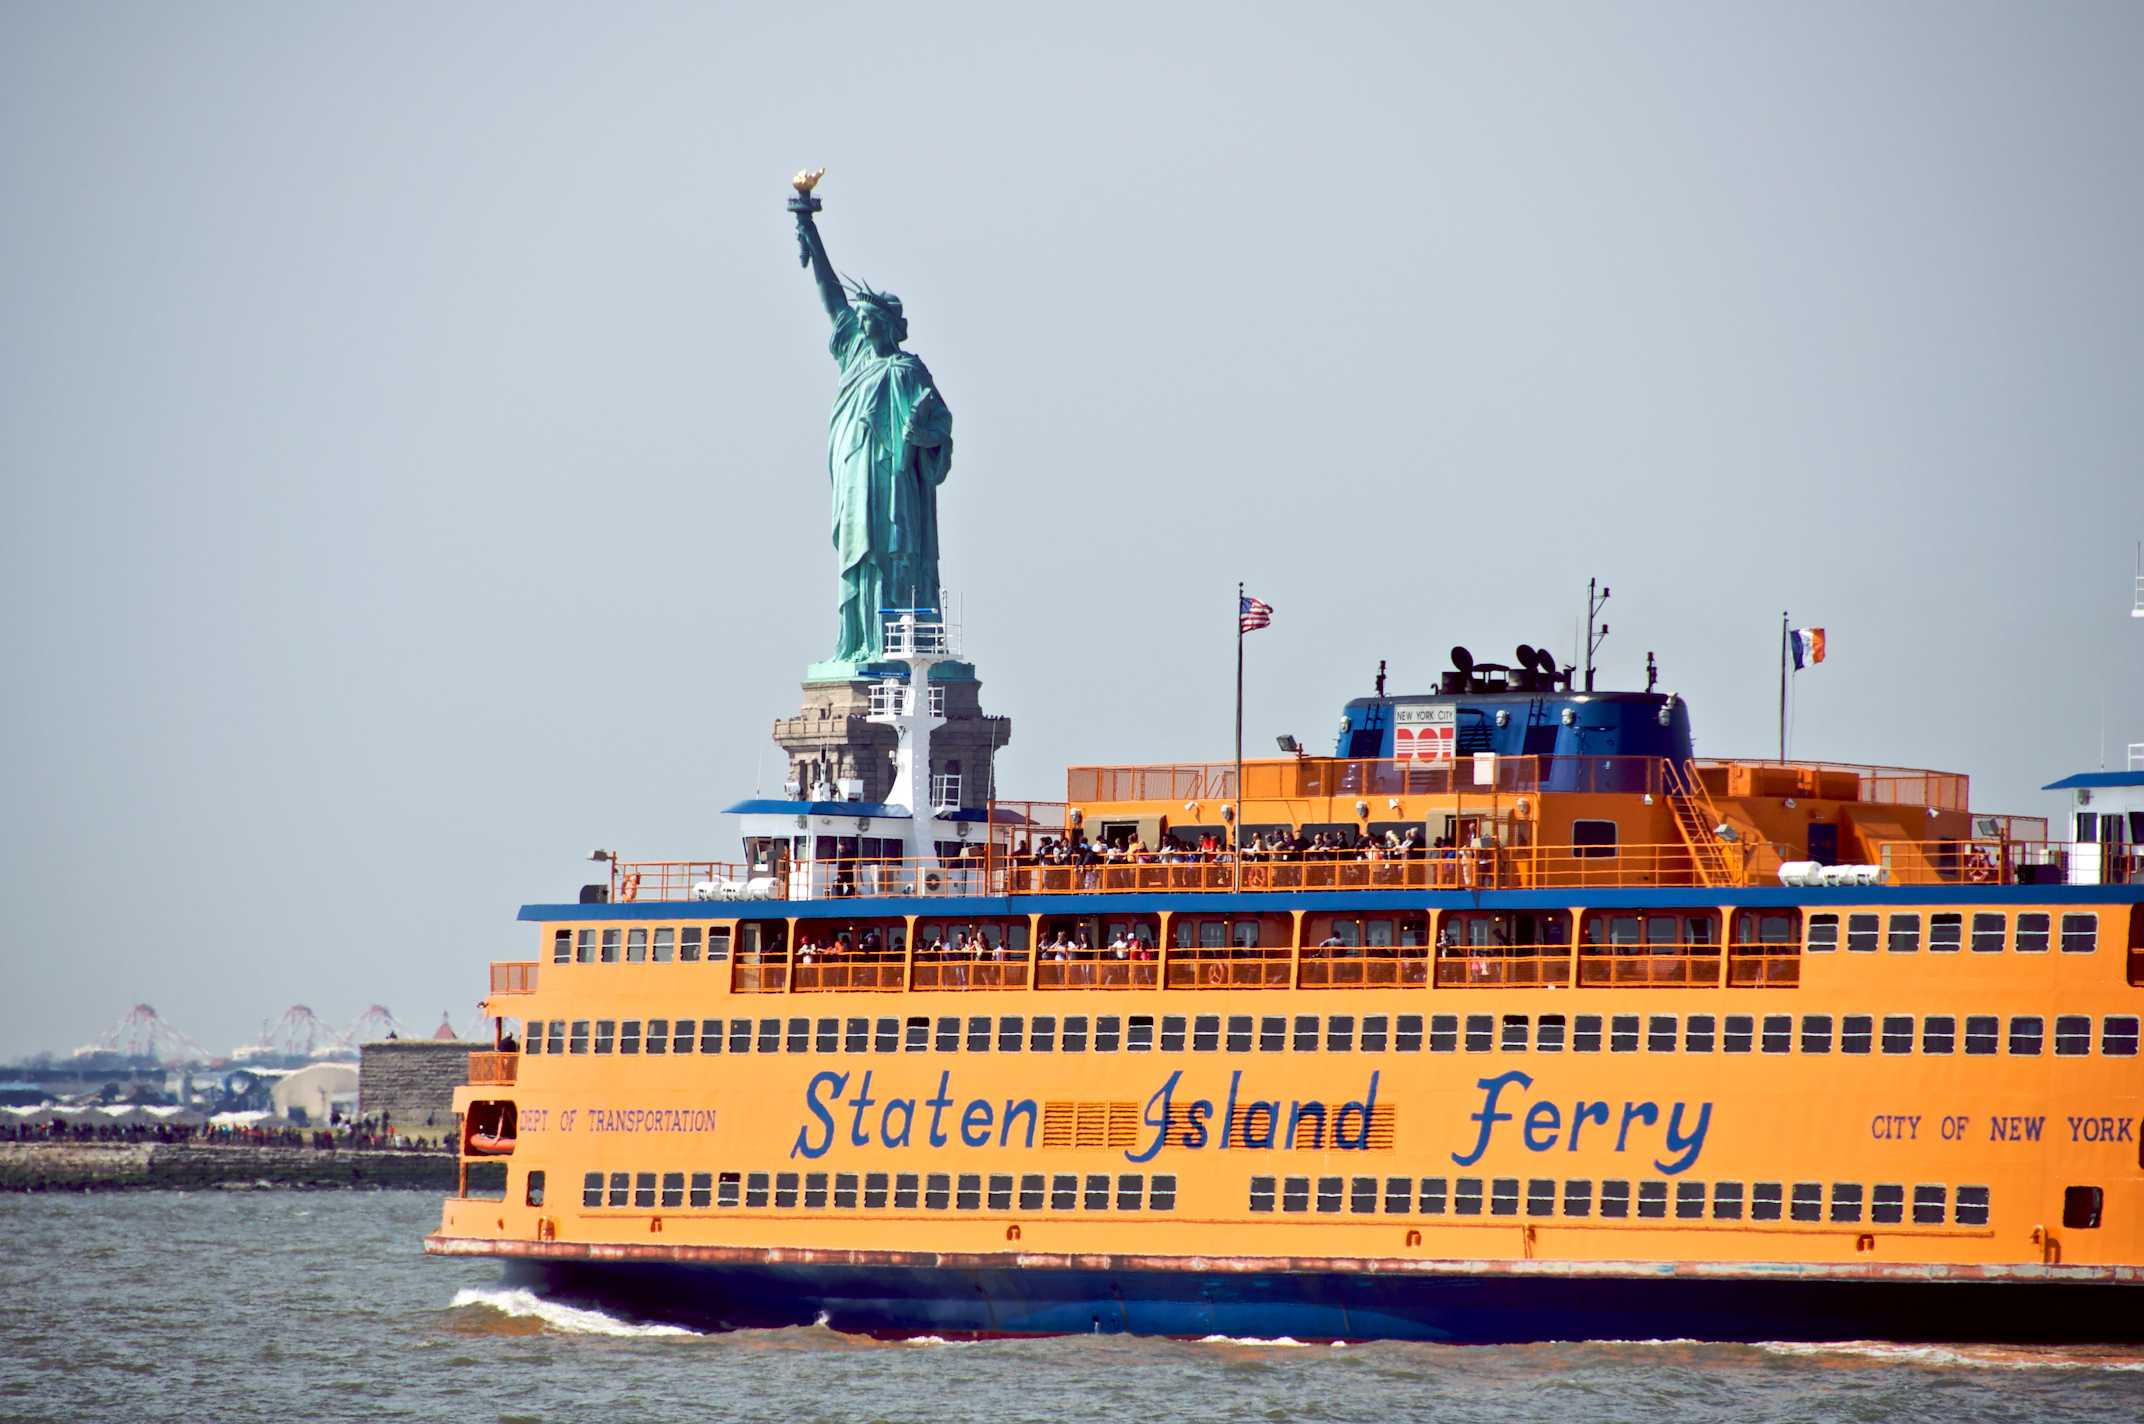 Staten Island Ferry with Statue of Liberty behind it